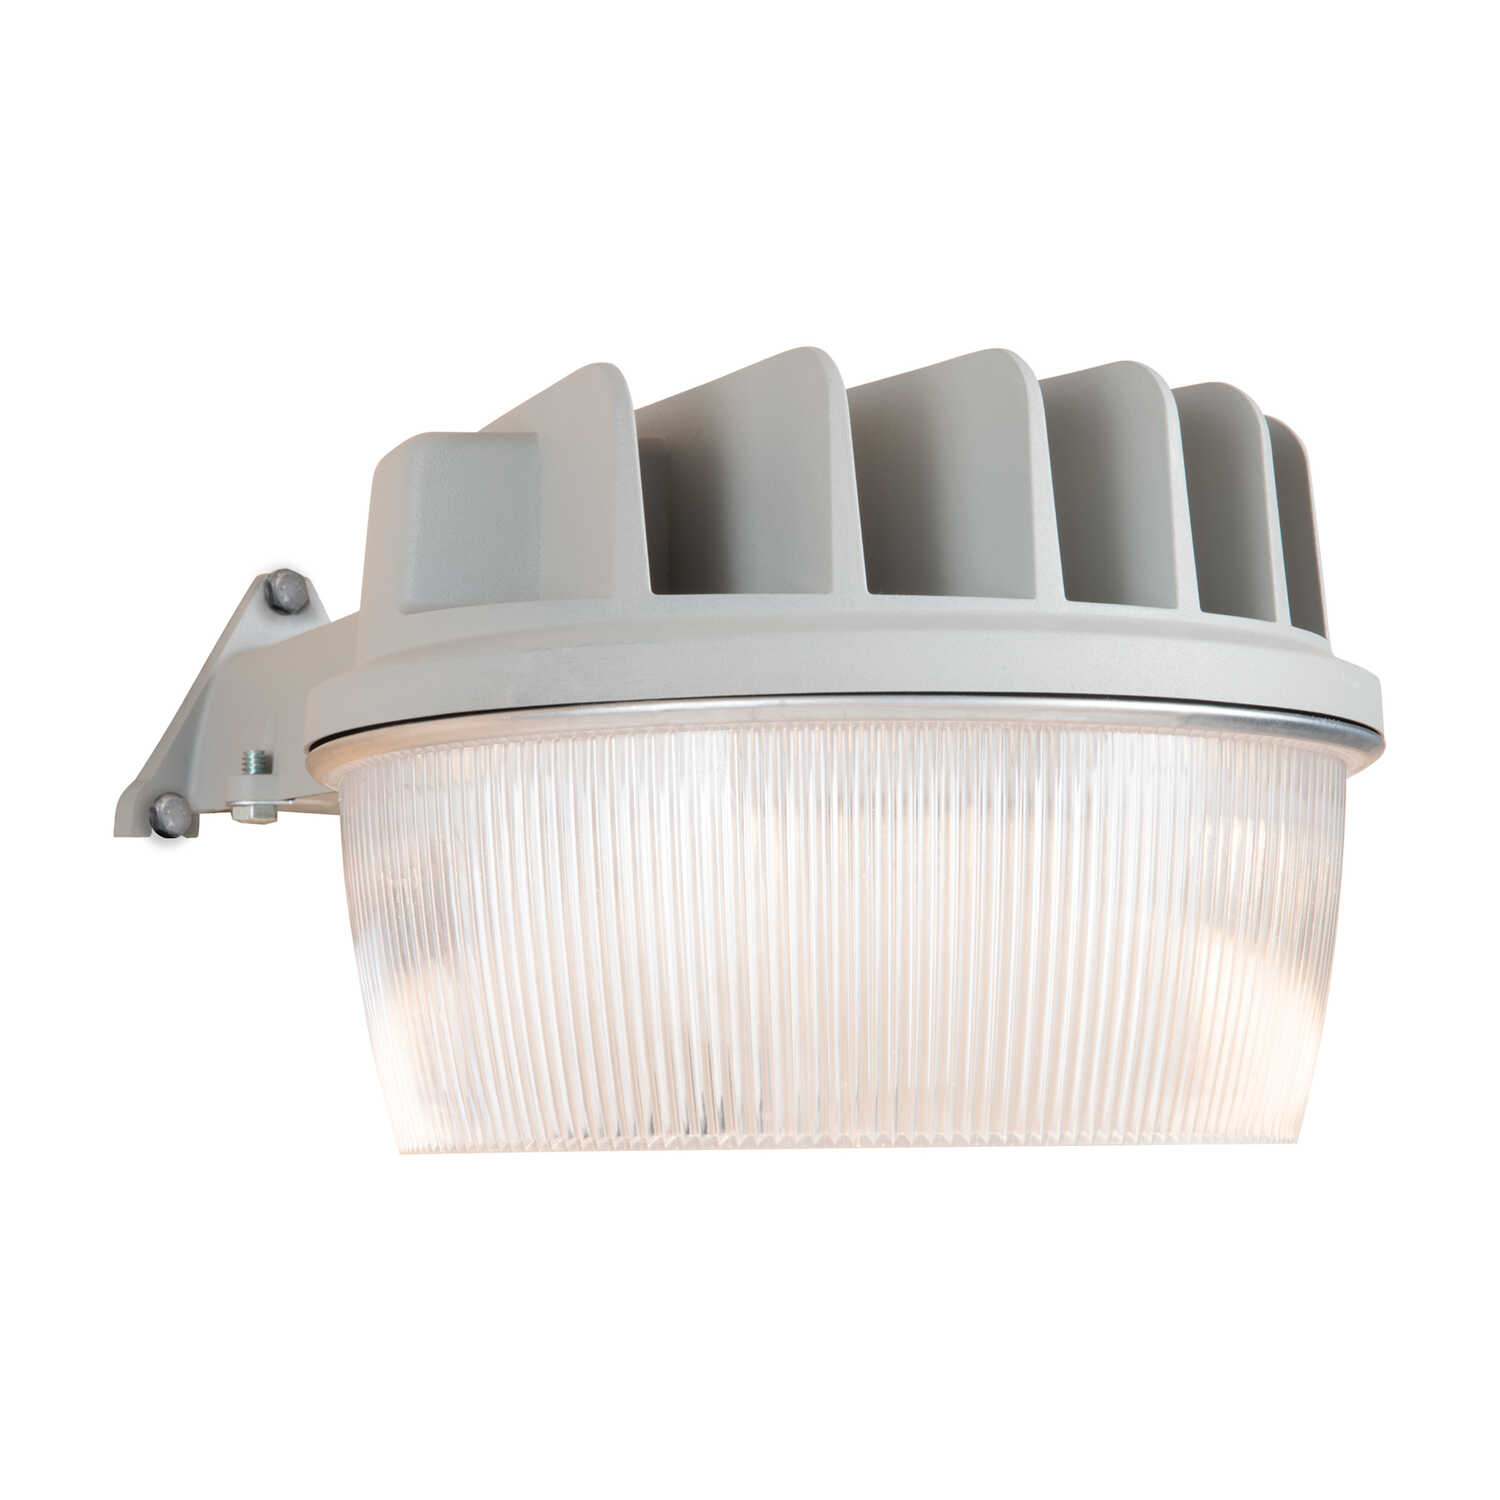 All Pro  Dusk to Dawn  Hardwired  LED  Gray  Area Light